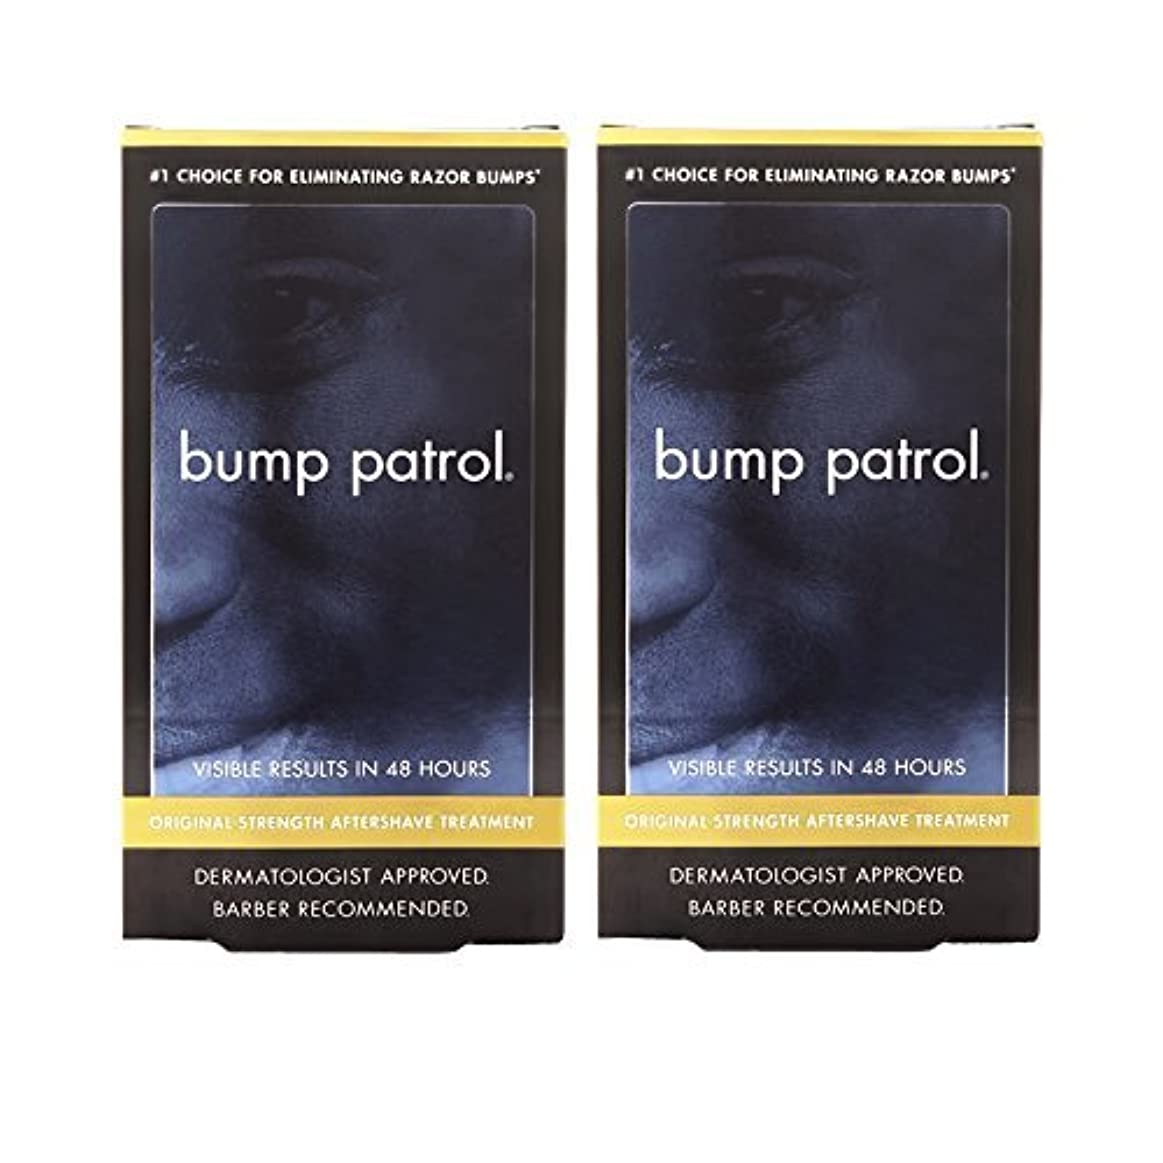 震えるエンターテインメント滑り台Bump Patrol Dermatologist Approved Original Strength Aftershave Treatment (2 oz) 2 Pack [並行輸入品]